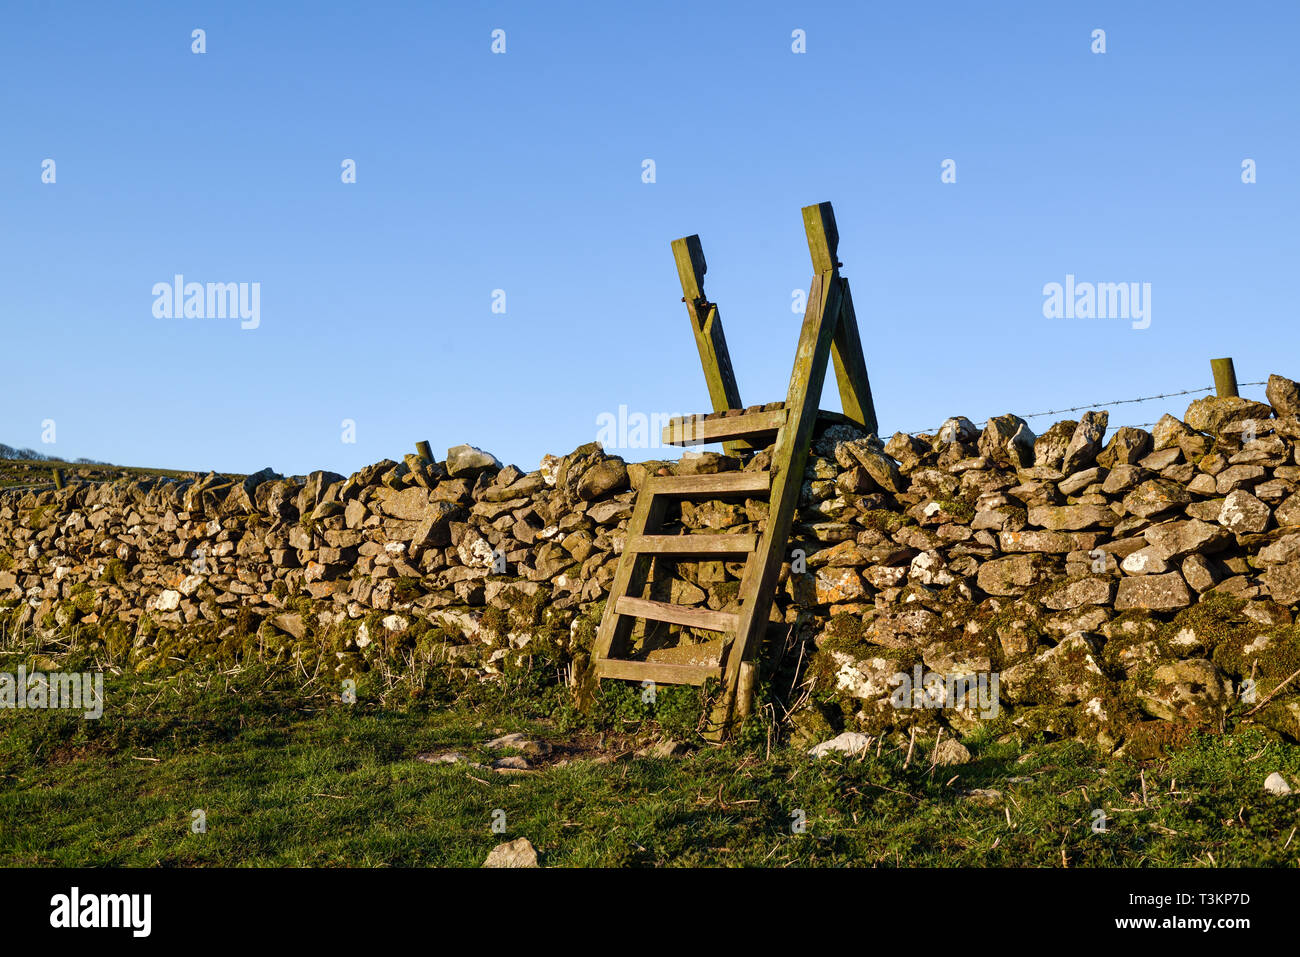 A Ladder stiles crossing a dry stone wall in Derbyshire,UK. - Stock Image